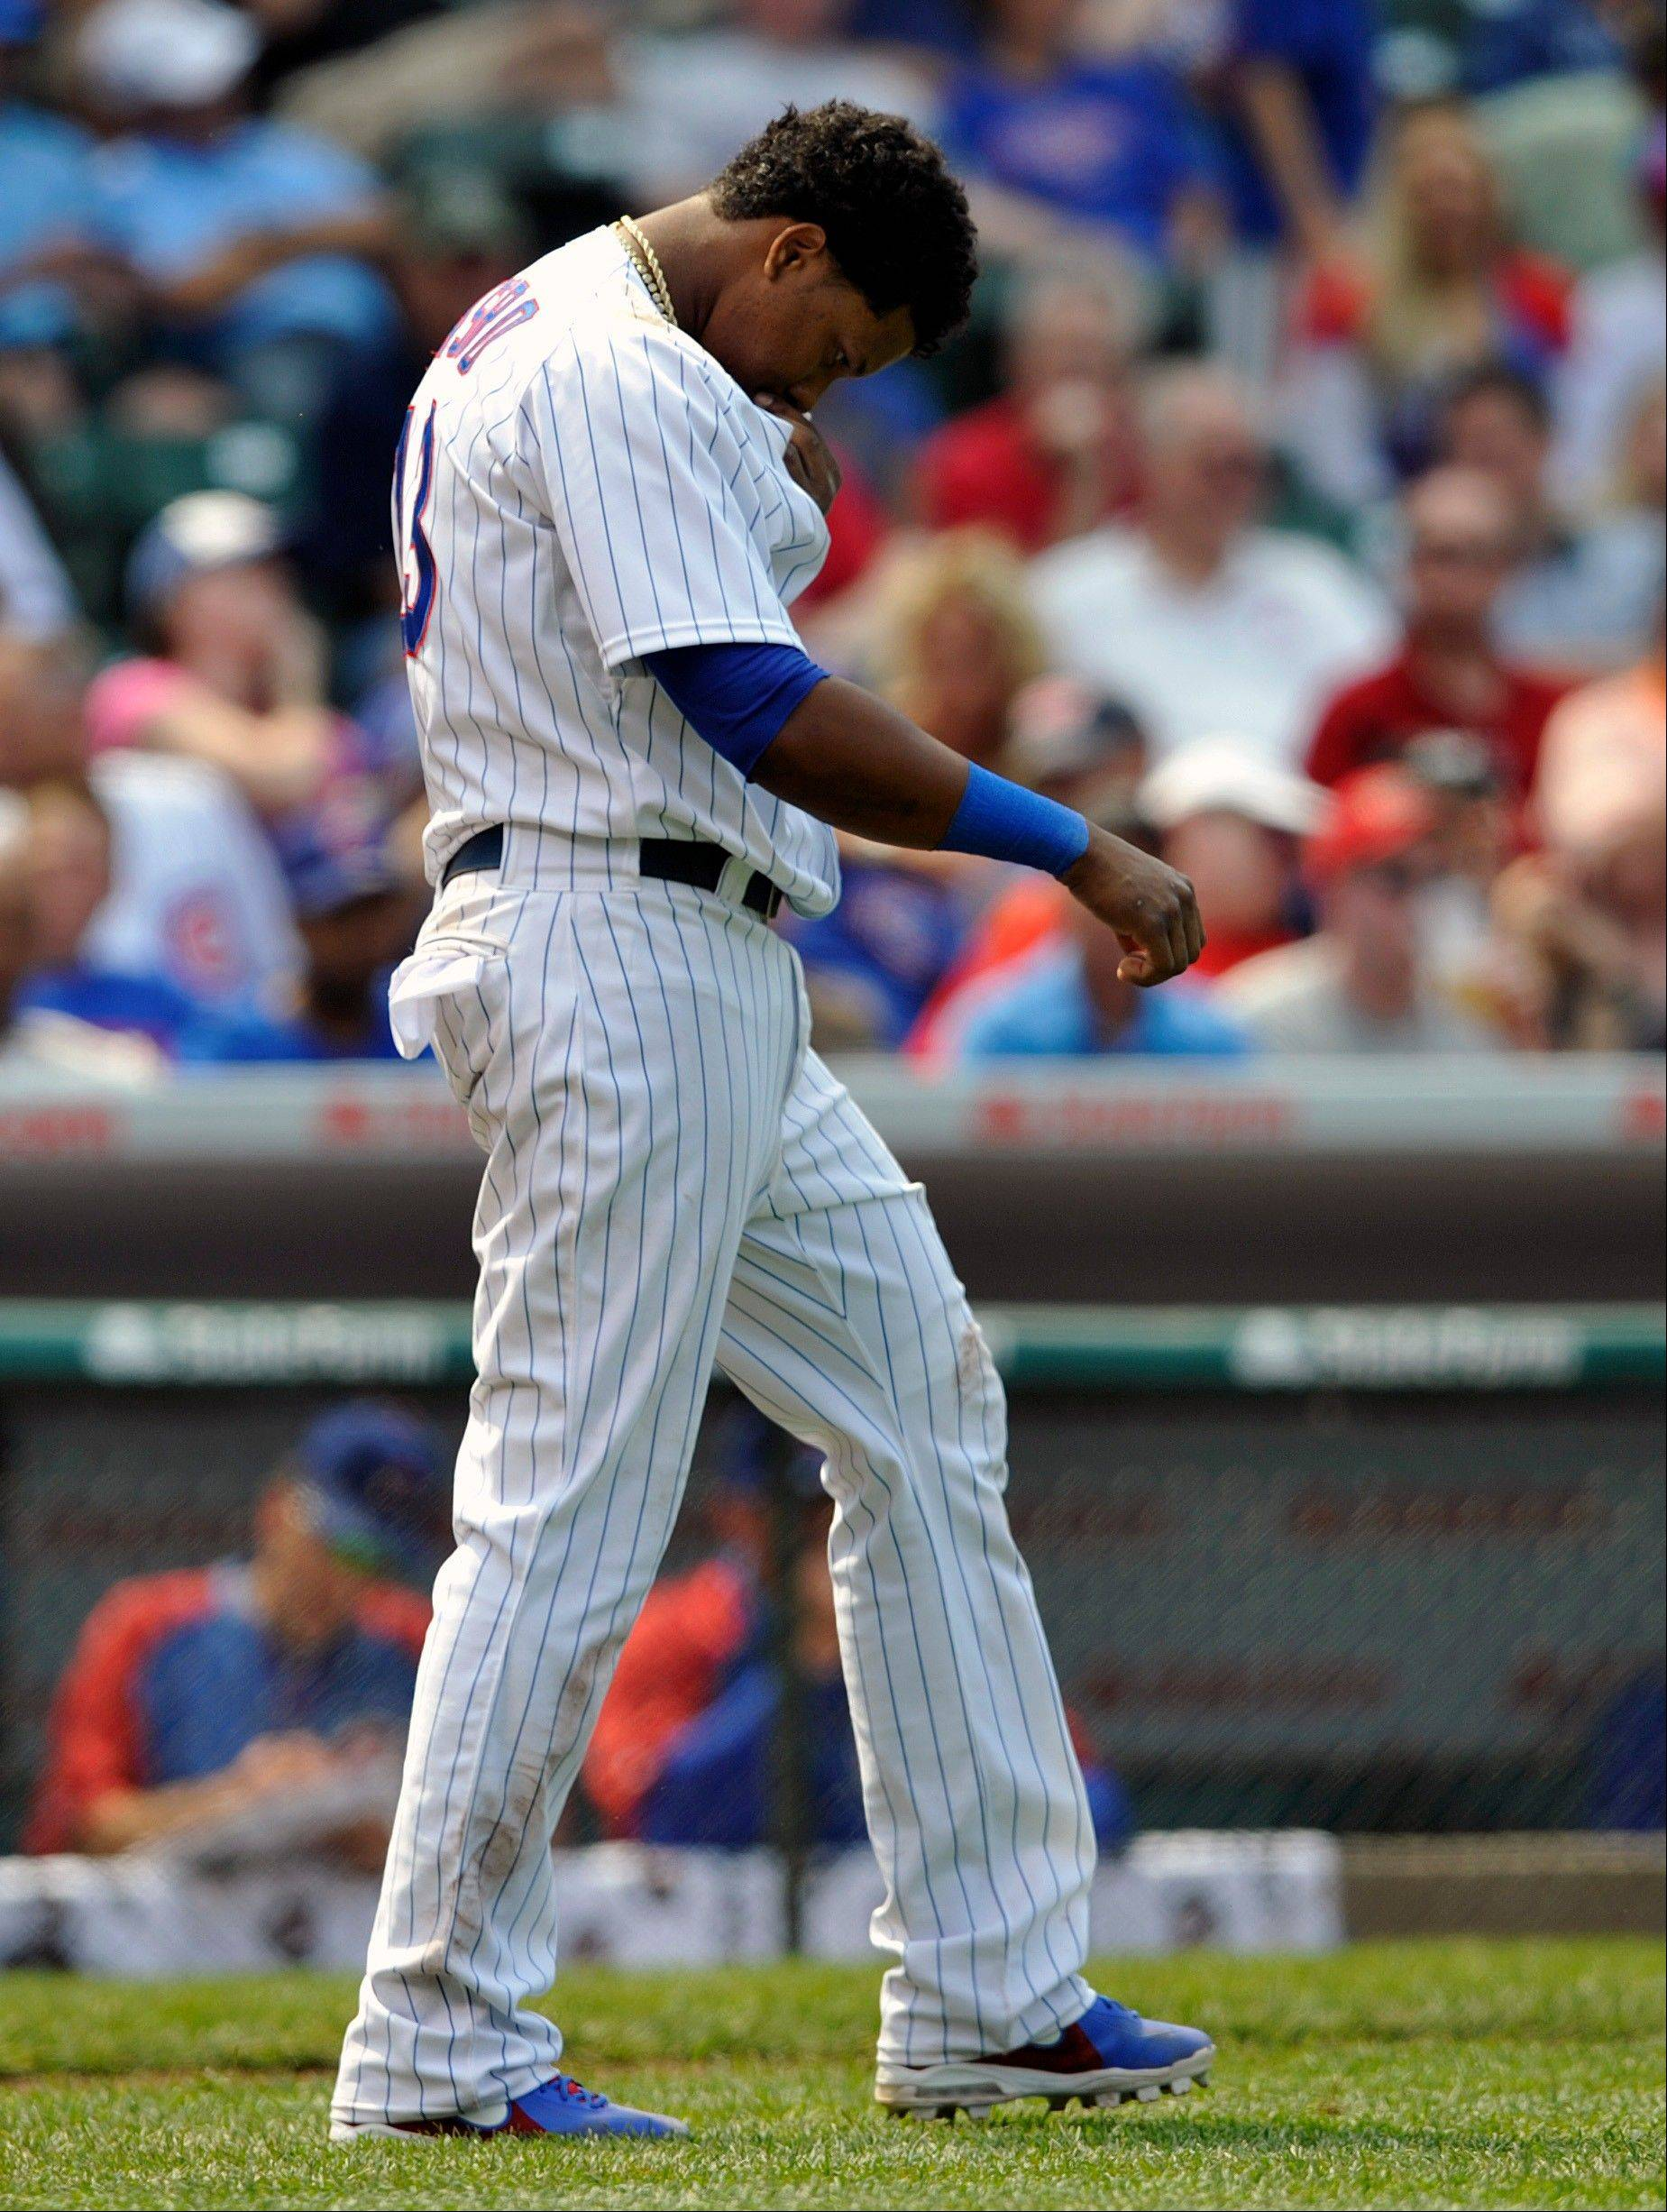 Chicago Cubs' Starlin Castro reacts after striking out against the Cincinnati Reds during the seventh inning of a baseball game on Wednesday, June 12, 2013, in Chicago.